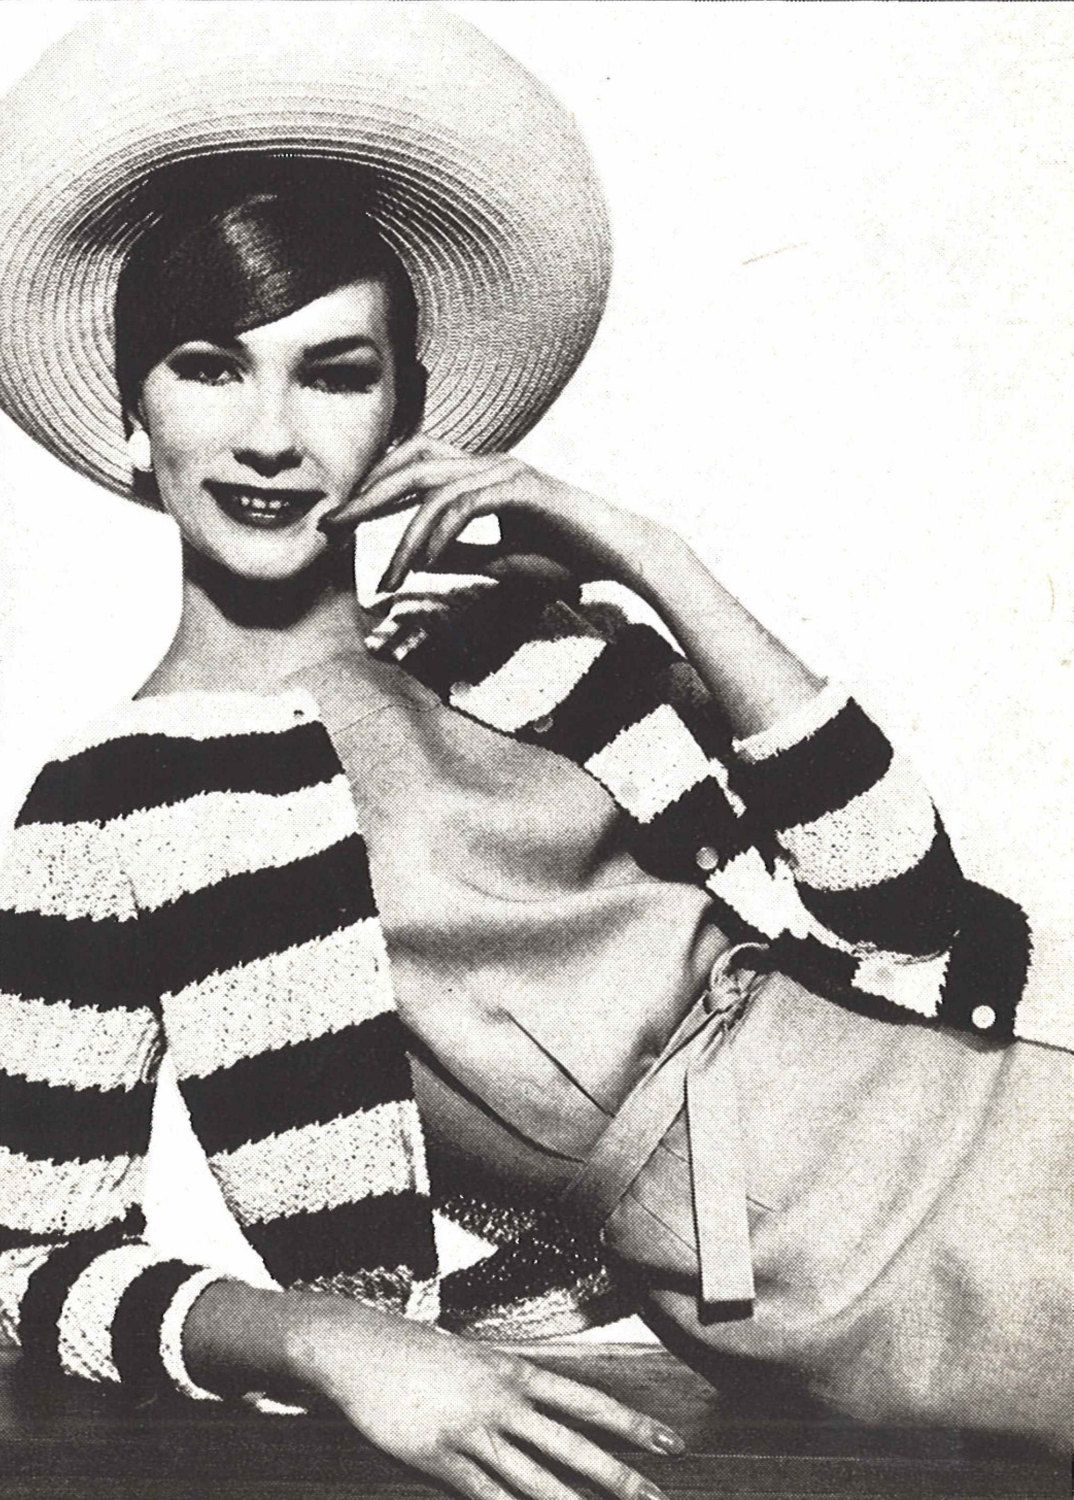 Rivera cardigan 1960s knitting striped french sweater top rivera cardigan 1960s knitting striped french sweater top pattern vintage vogue knit 1961 bankloansurffo Choice Image